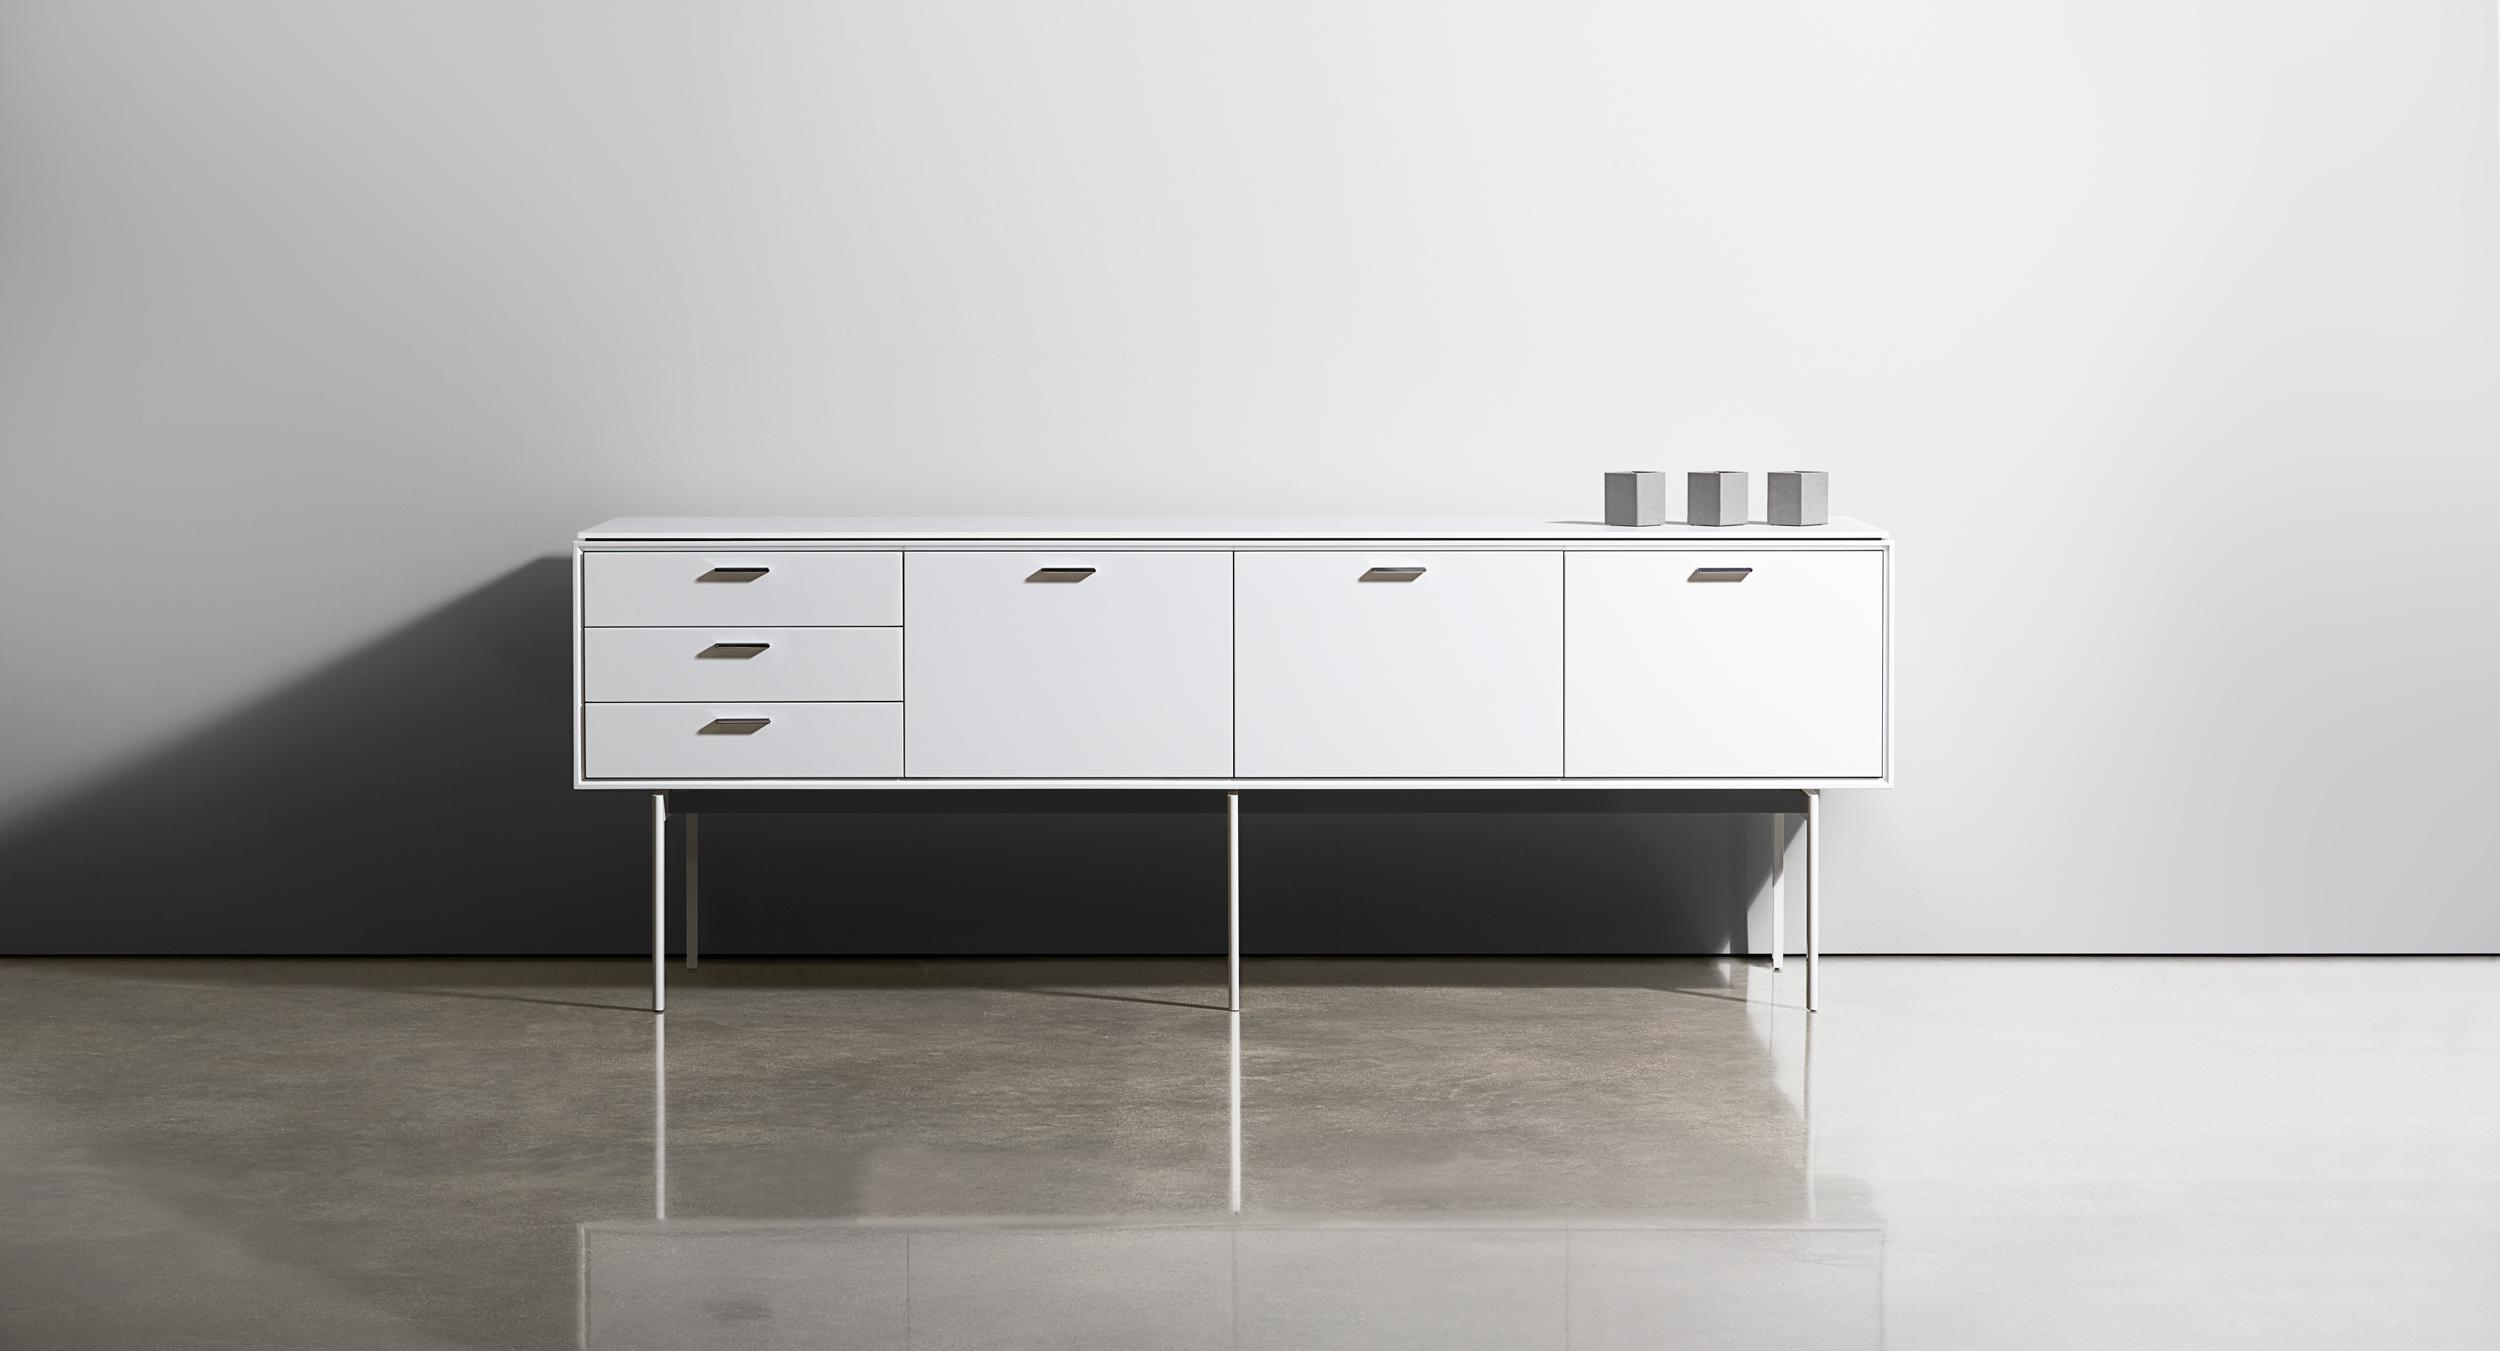 Halo's elegant design supports a complete and flexible system to meet all of your storage needs.